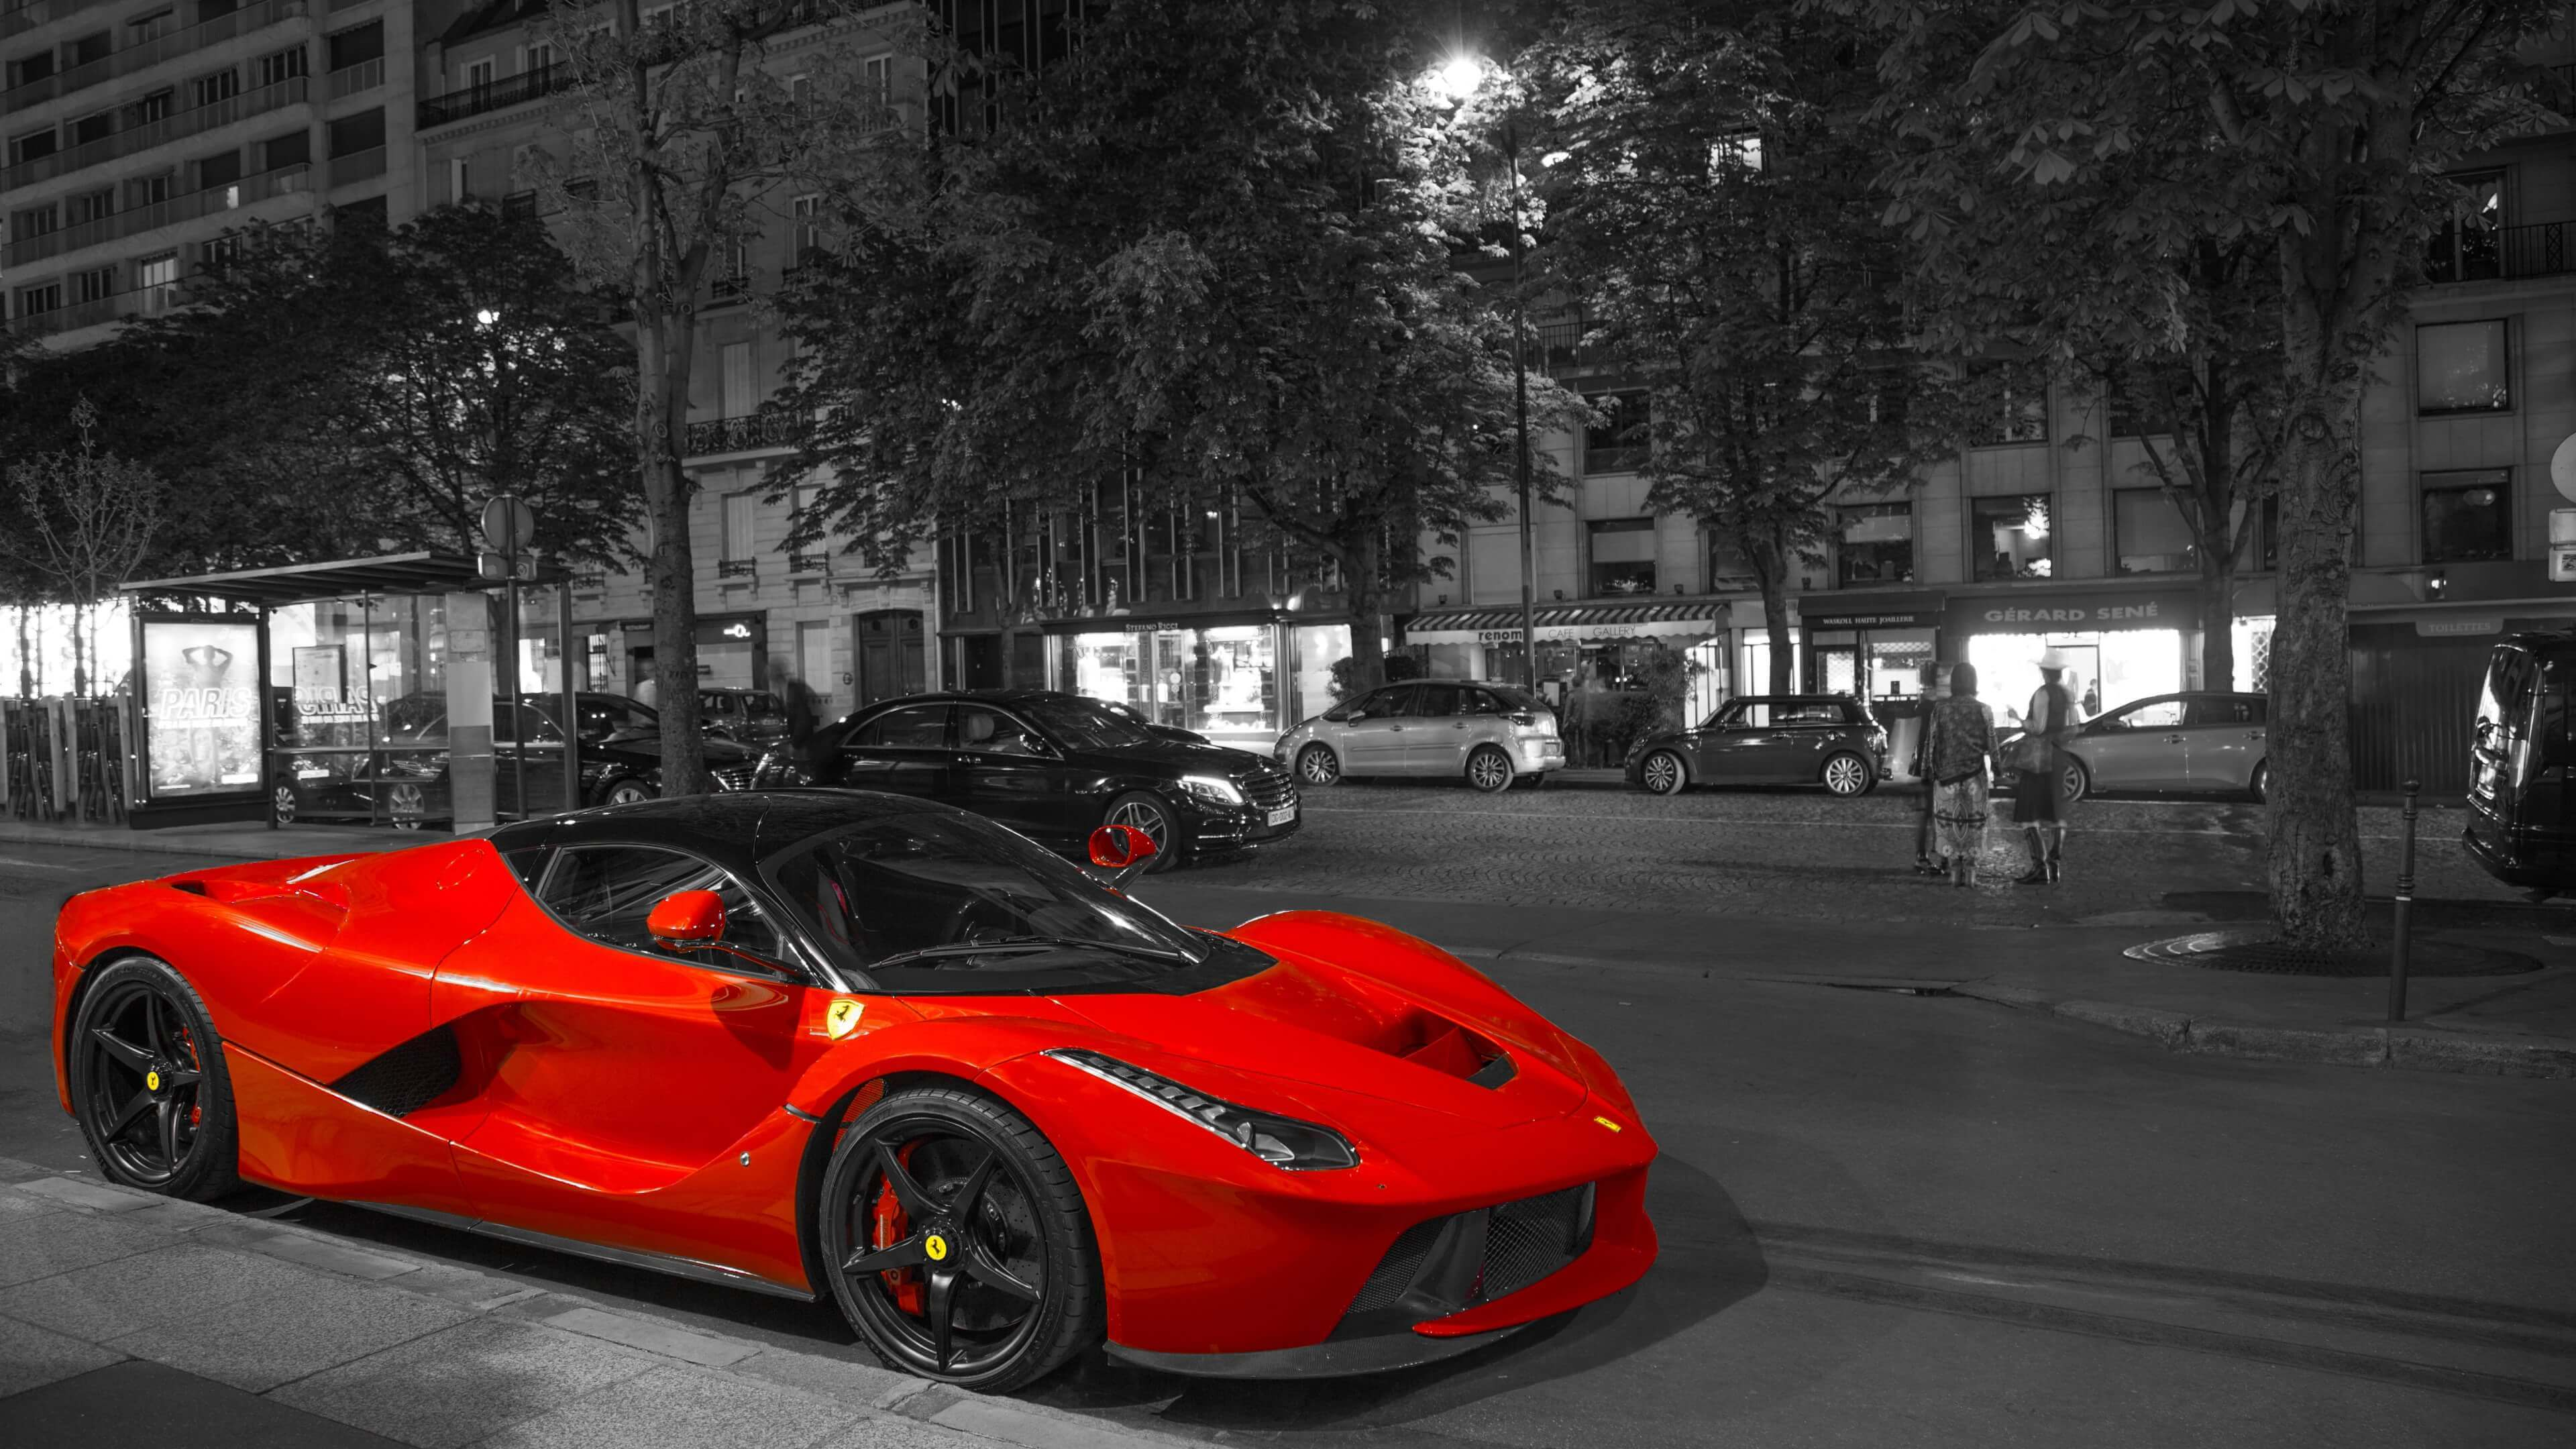 Ferrari LaFerrari Red Supercar 4K Wallpaper 3840x2160